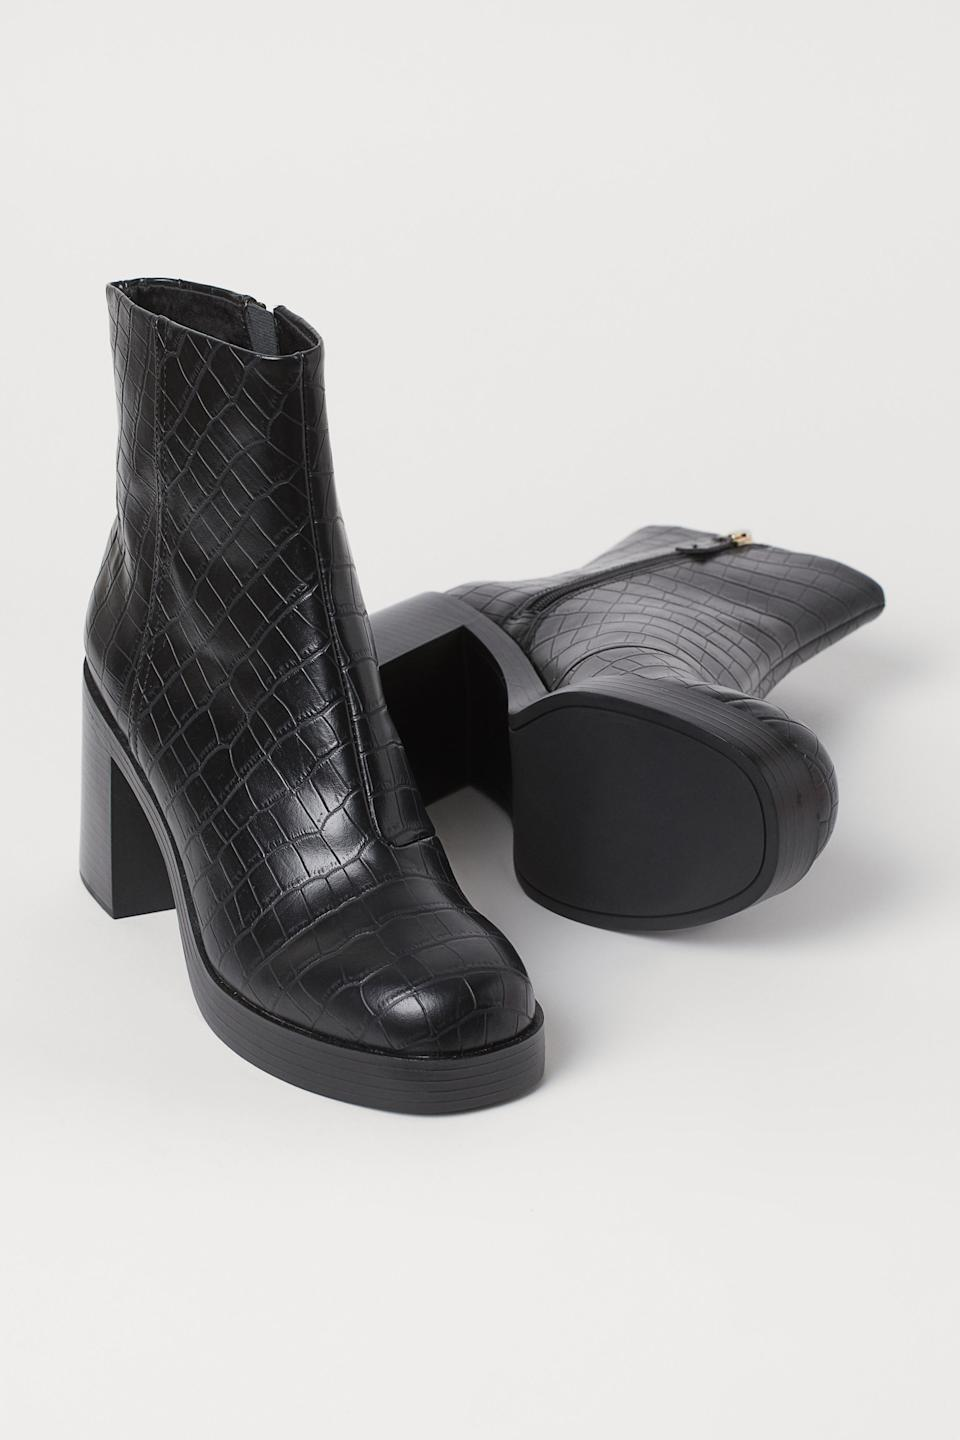 """<br><br><strong>H&M</strong> Block-Heeled Ankle Boots, $, available at <a href=""""https://go.skimresources.com/?id=30283X879131&url=https%3A%2F%2Fwww2.hm.com%2Fen_us%2Fproductpage.0898885002.html"""" rel=""""nofollow noopener"""" target=""""_blank"""" data-ylk=""""slk:H&M"""" class=""""link rapid-noclick-resp"""">H&M</a>"""